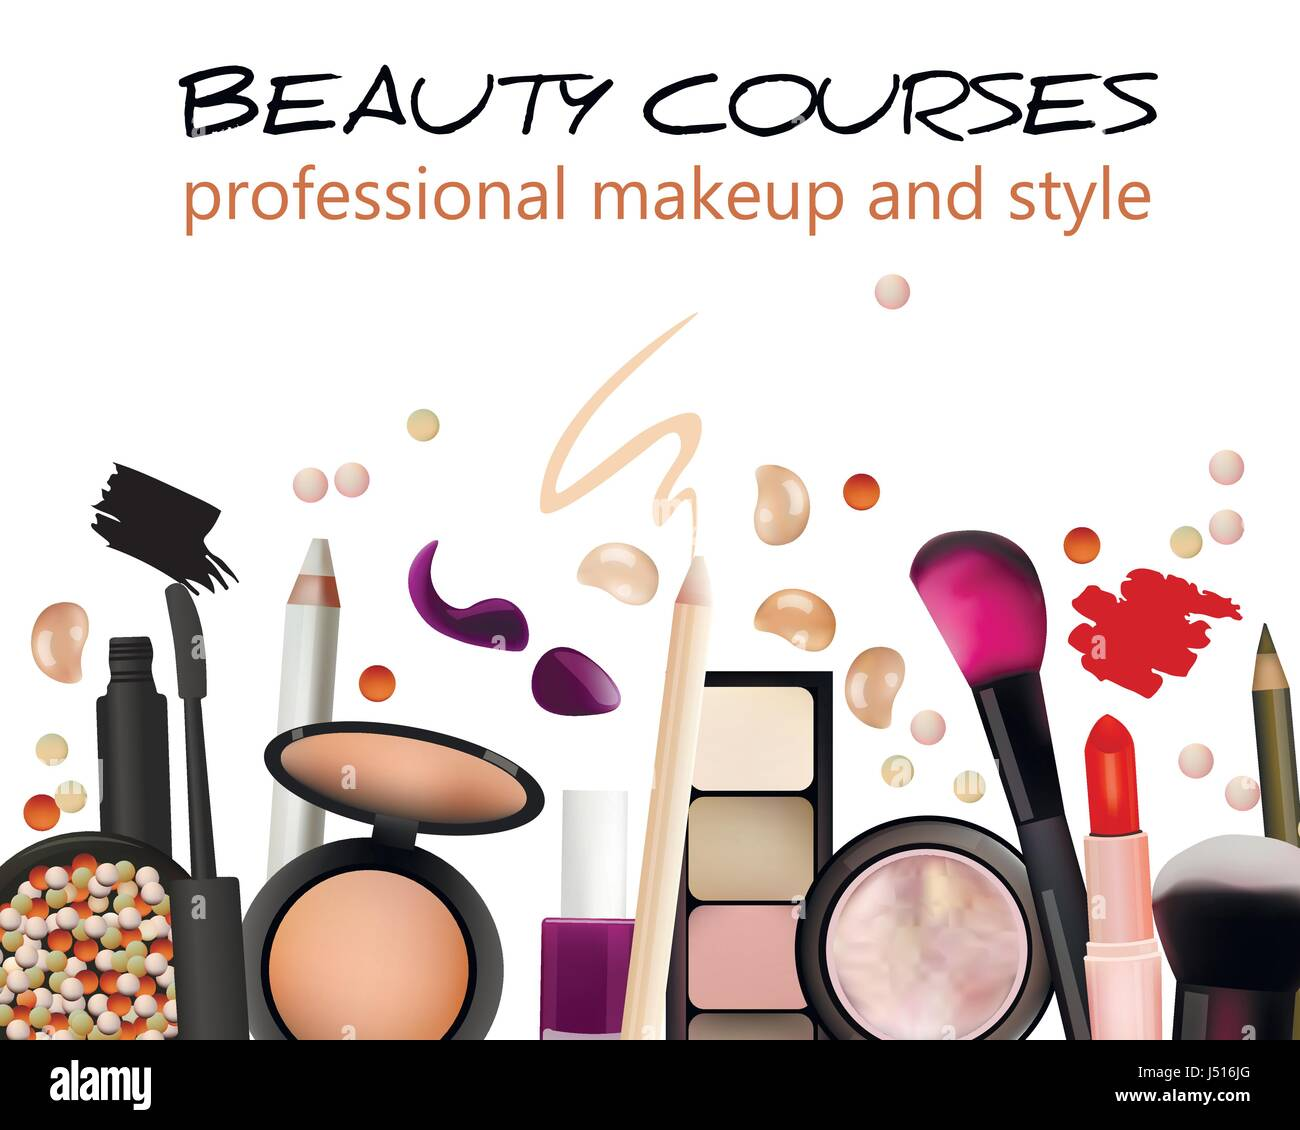 Beauty Courses Poster Design Cosmetic Products Professional Make Stock Vector Image Art Alamy